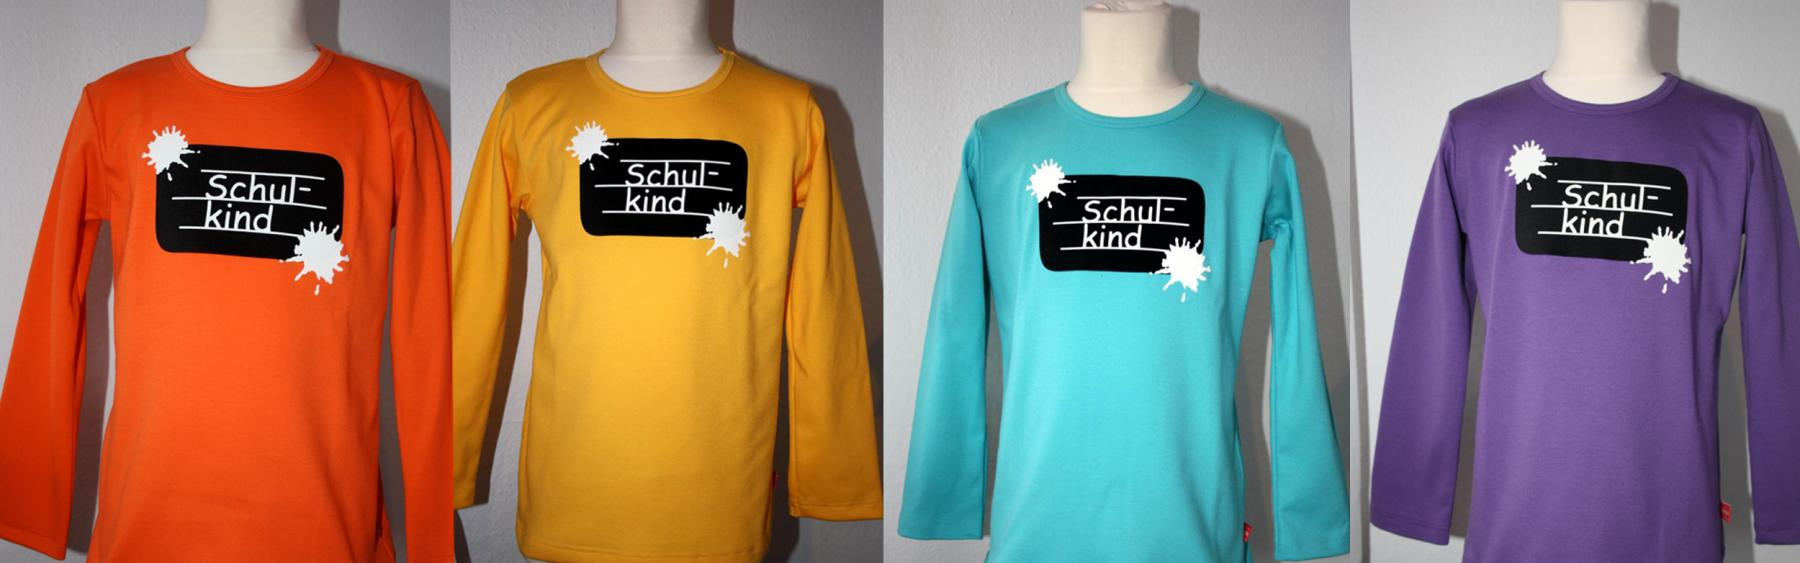 Schulkind-Shirts